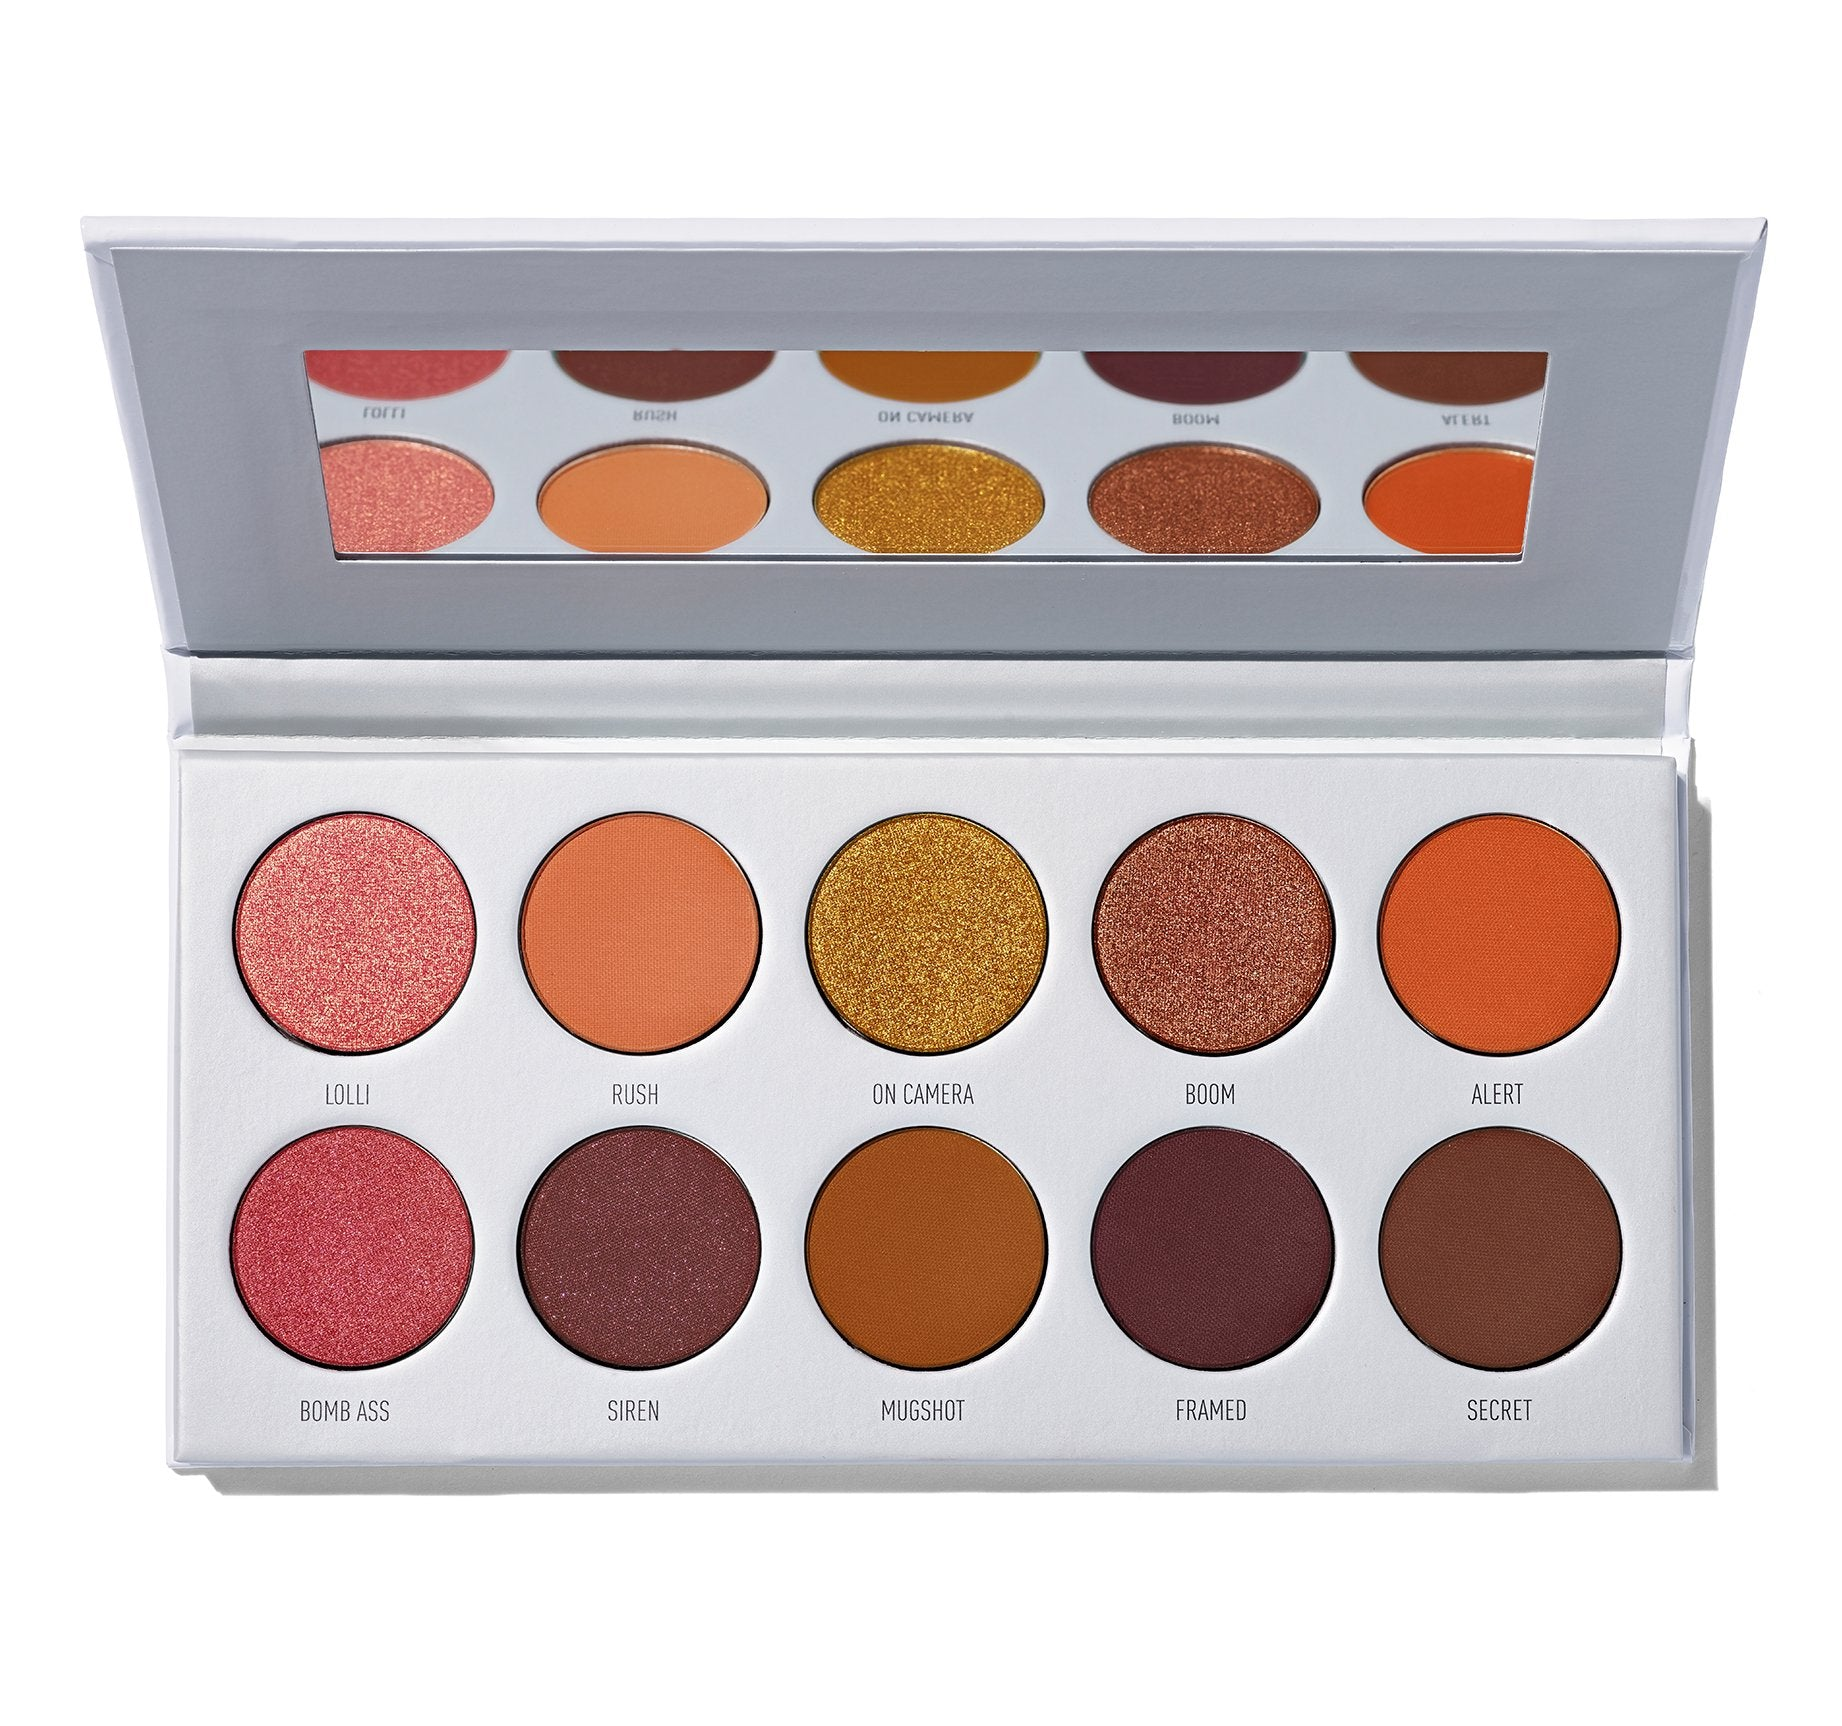 RING THE ALARM EYESHADOW PALETTE, view larger image